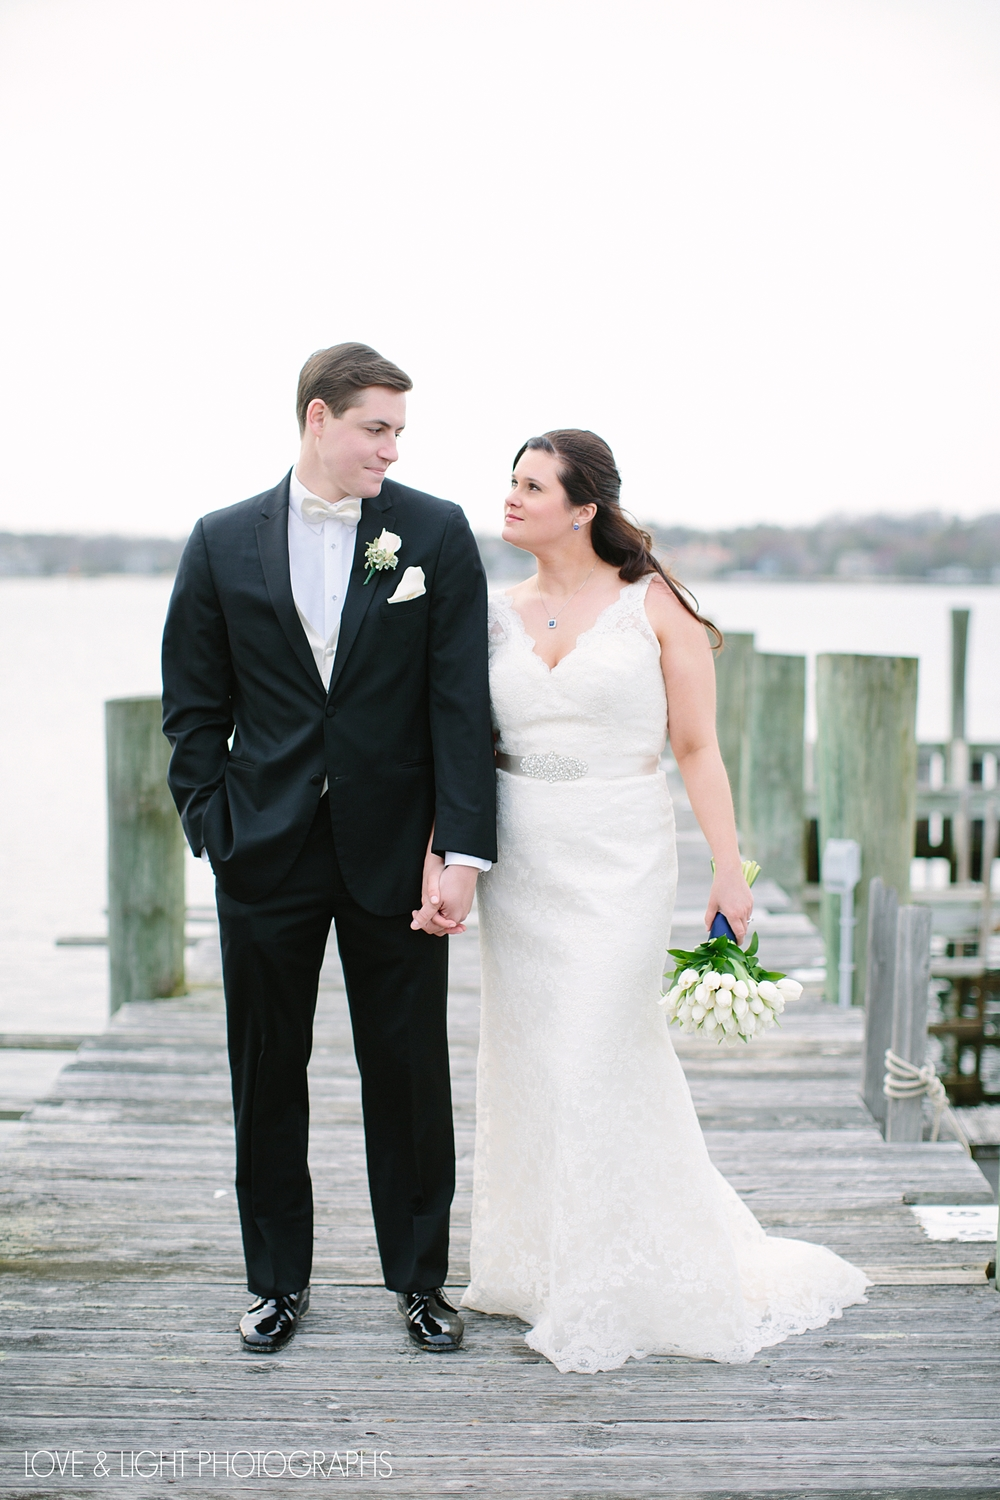 love&lightphotographs_nj_wedding_photographer_2014_recap-67.jpeg